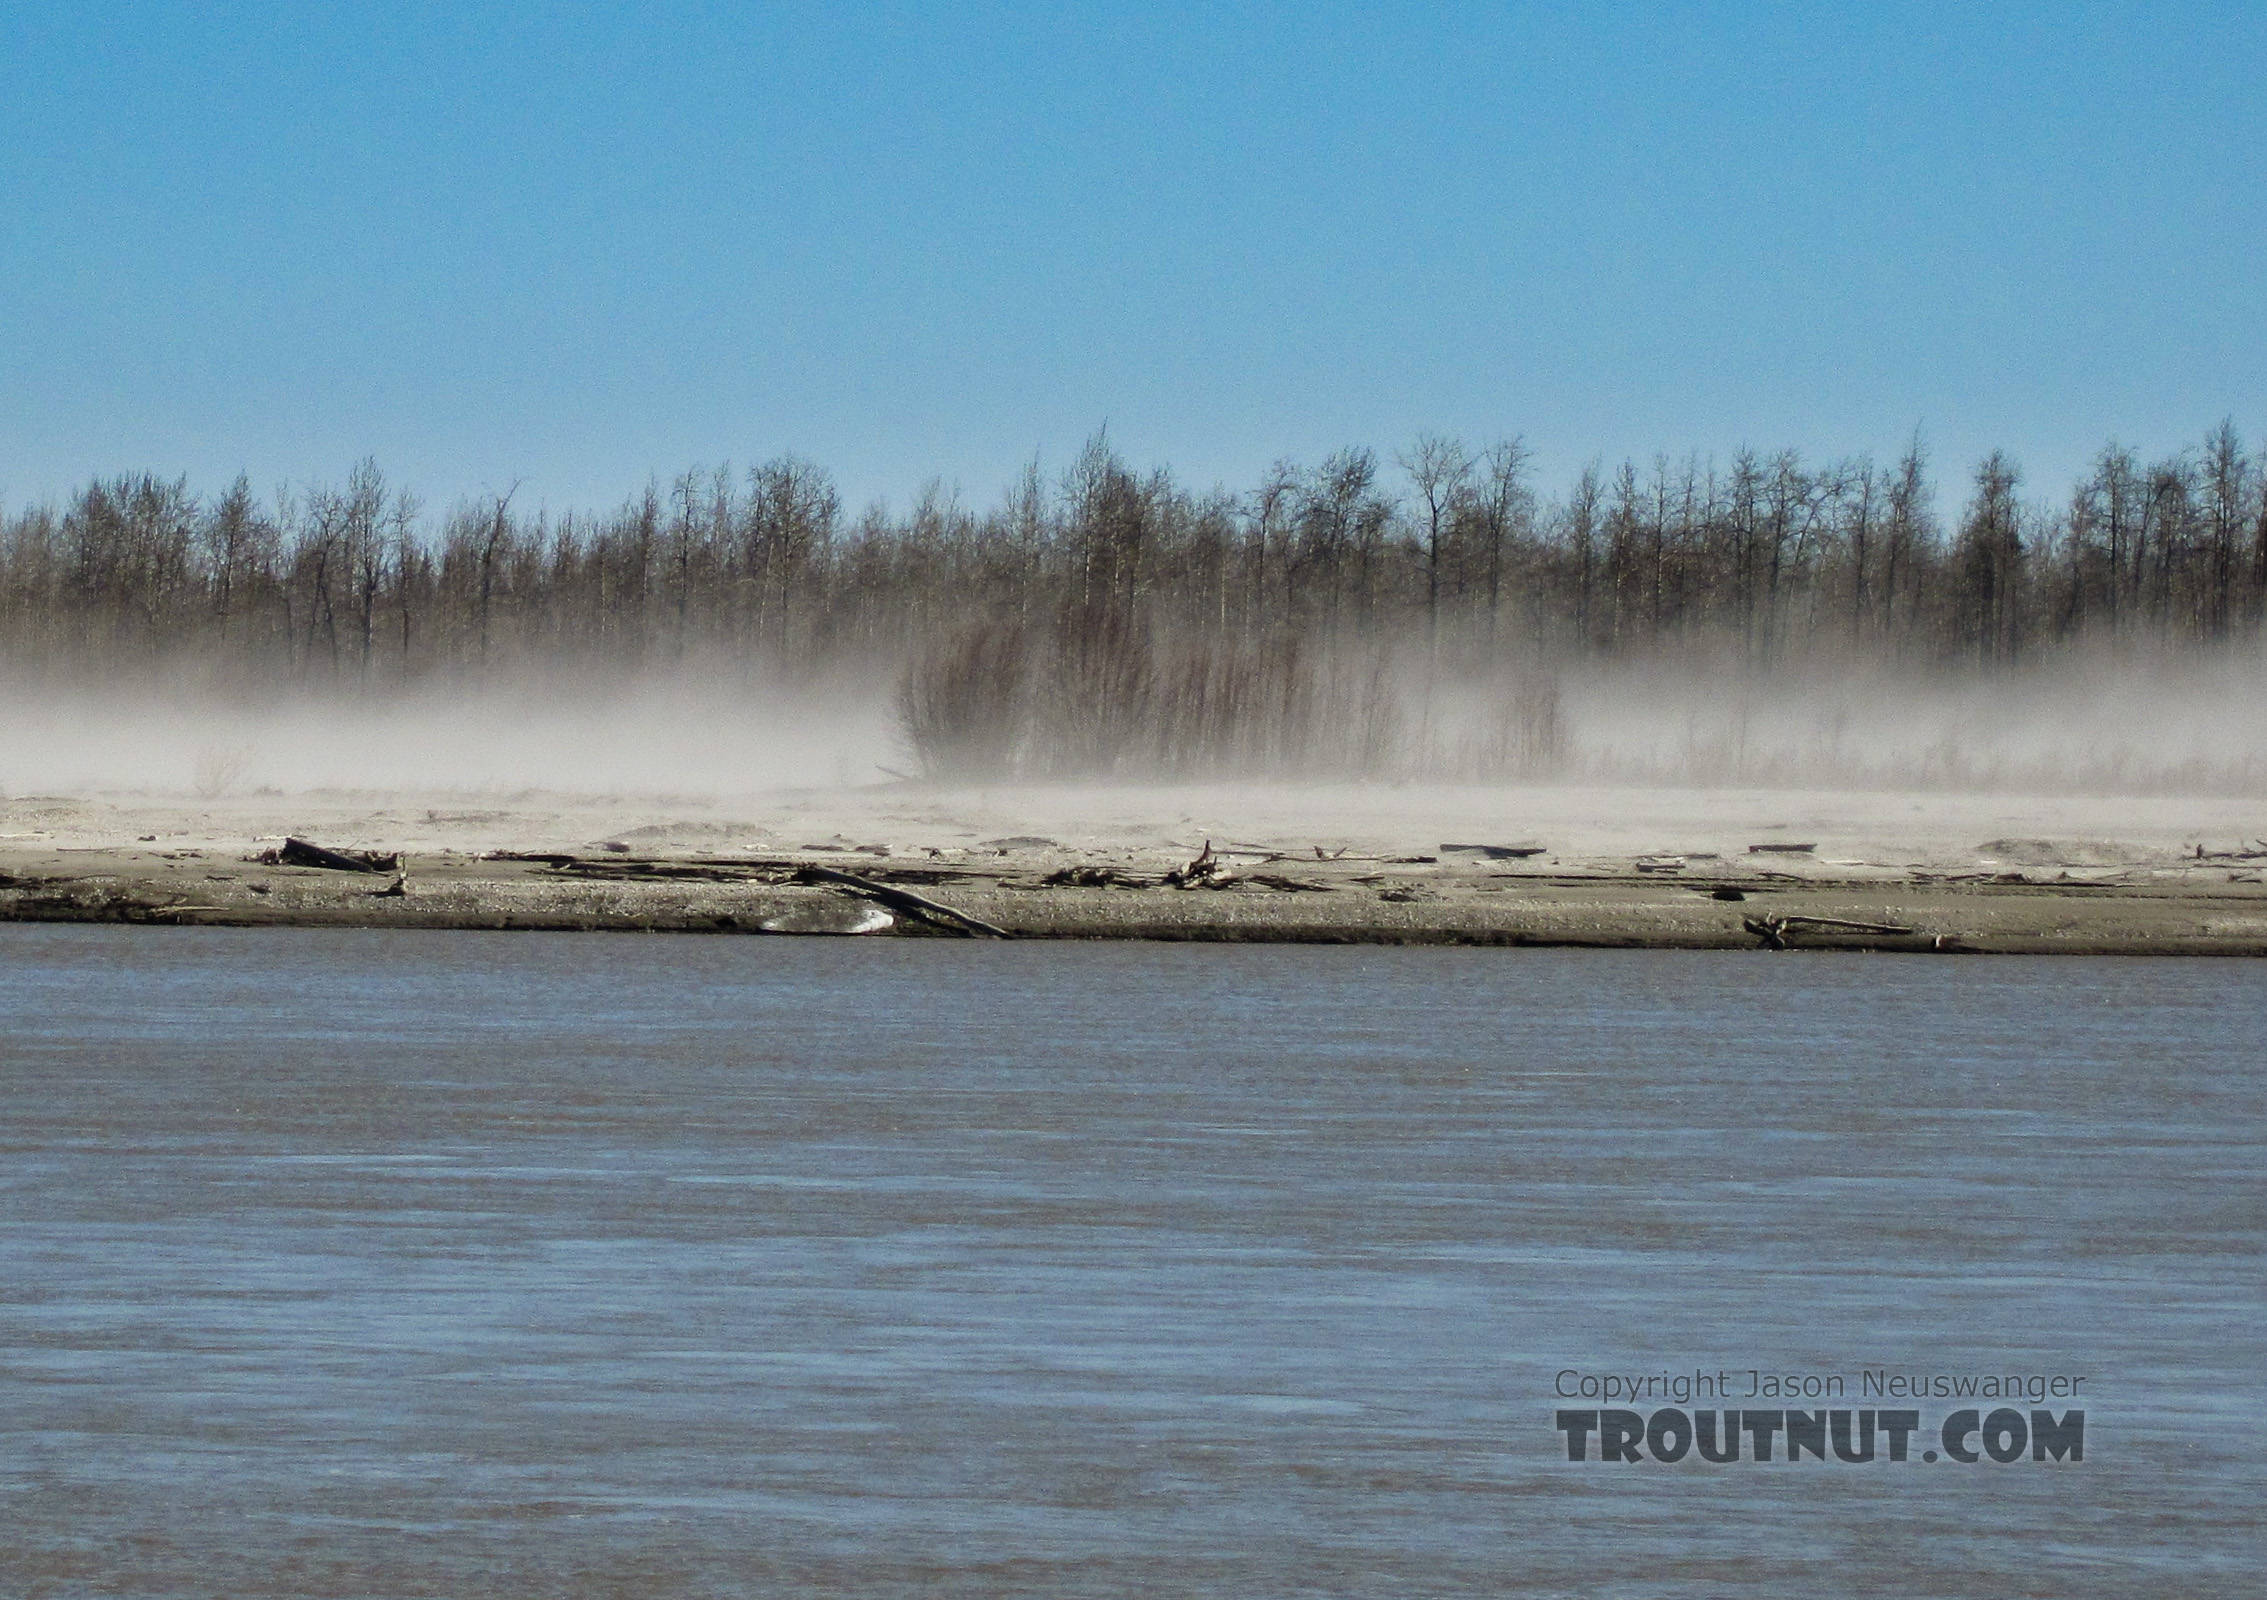 These dust storms are a common sight on the Tanana whenever it hasn't rained for several days.  The river's channel, mostly over a mile wide, consists mostly of vast bars of dry gravel and glacial silt that's easily kicked up by the wind. From the Tanana River in Alaska.